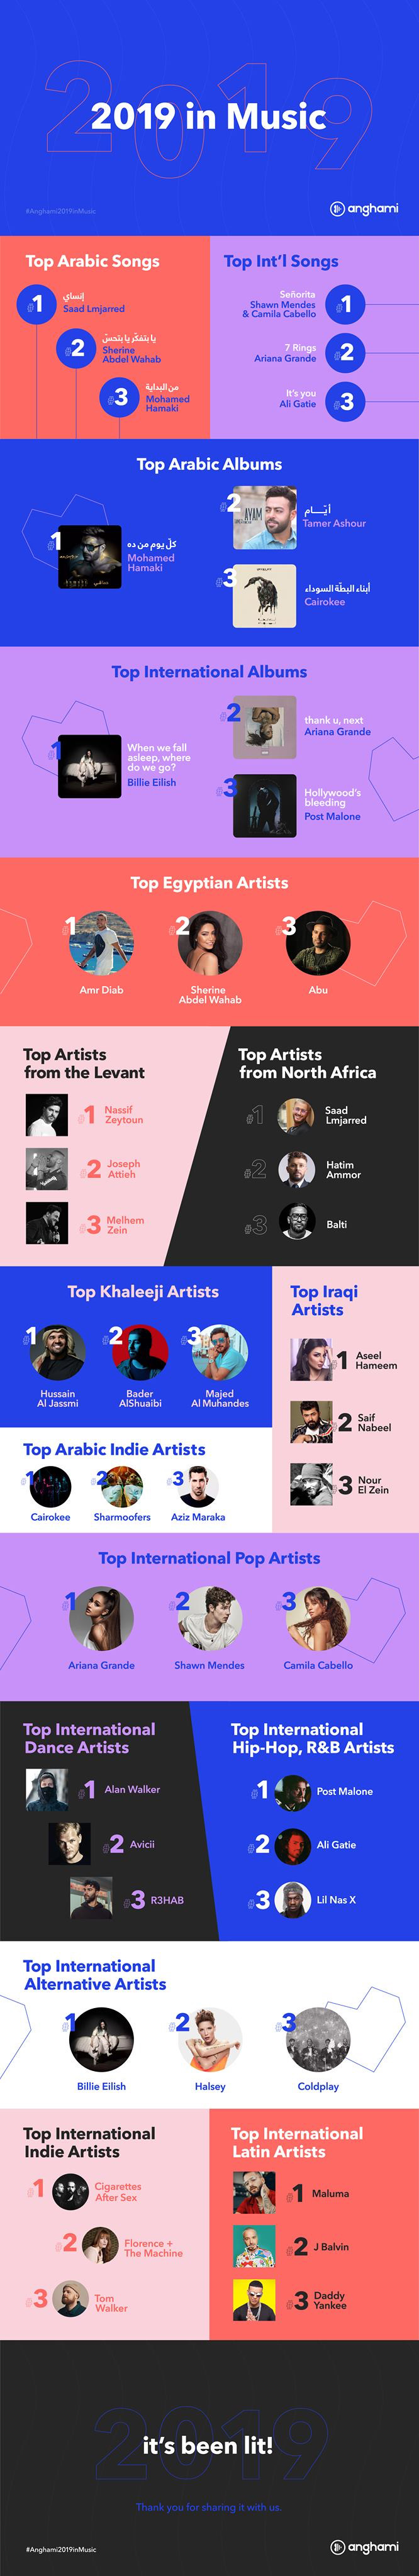 anghami in music 2019 infographic hq